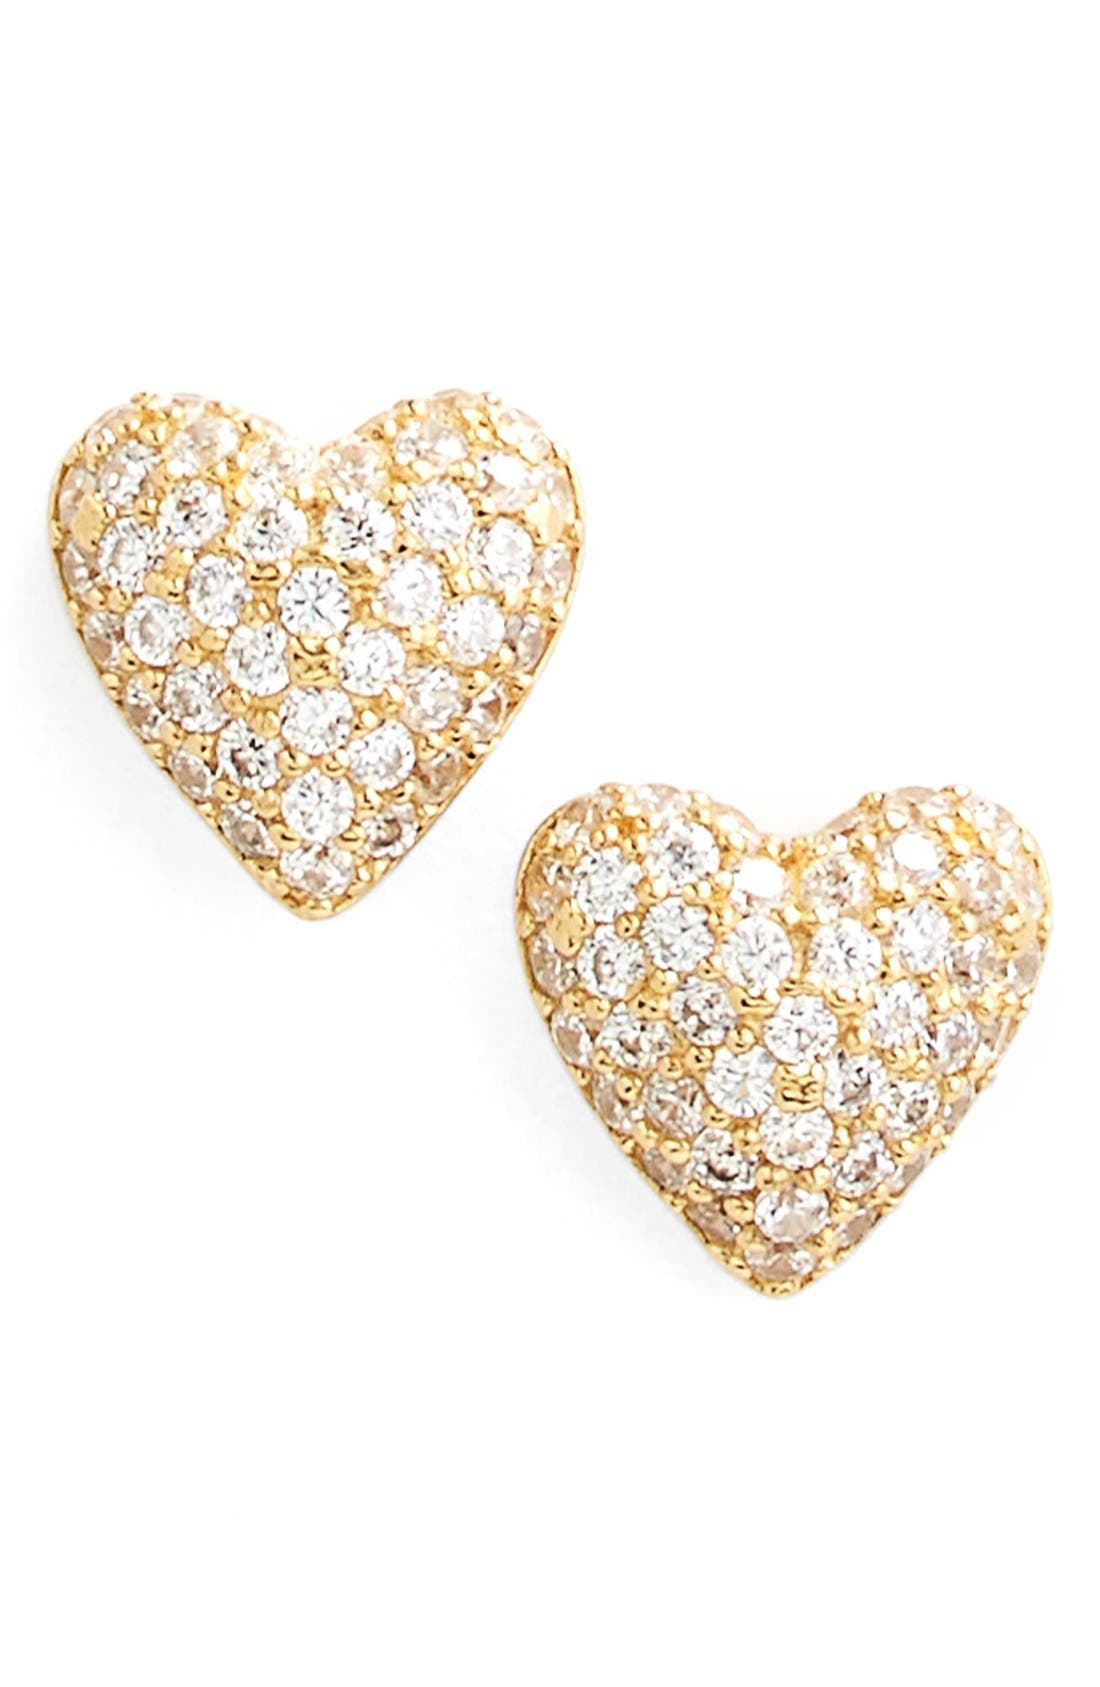 Alternate Image 1 Selected - Nadri 'Valentine's Day' Heart Stud Earrings